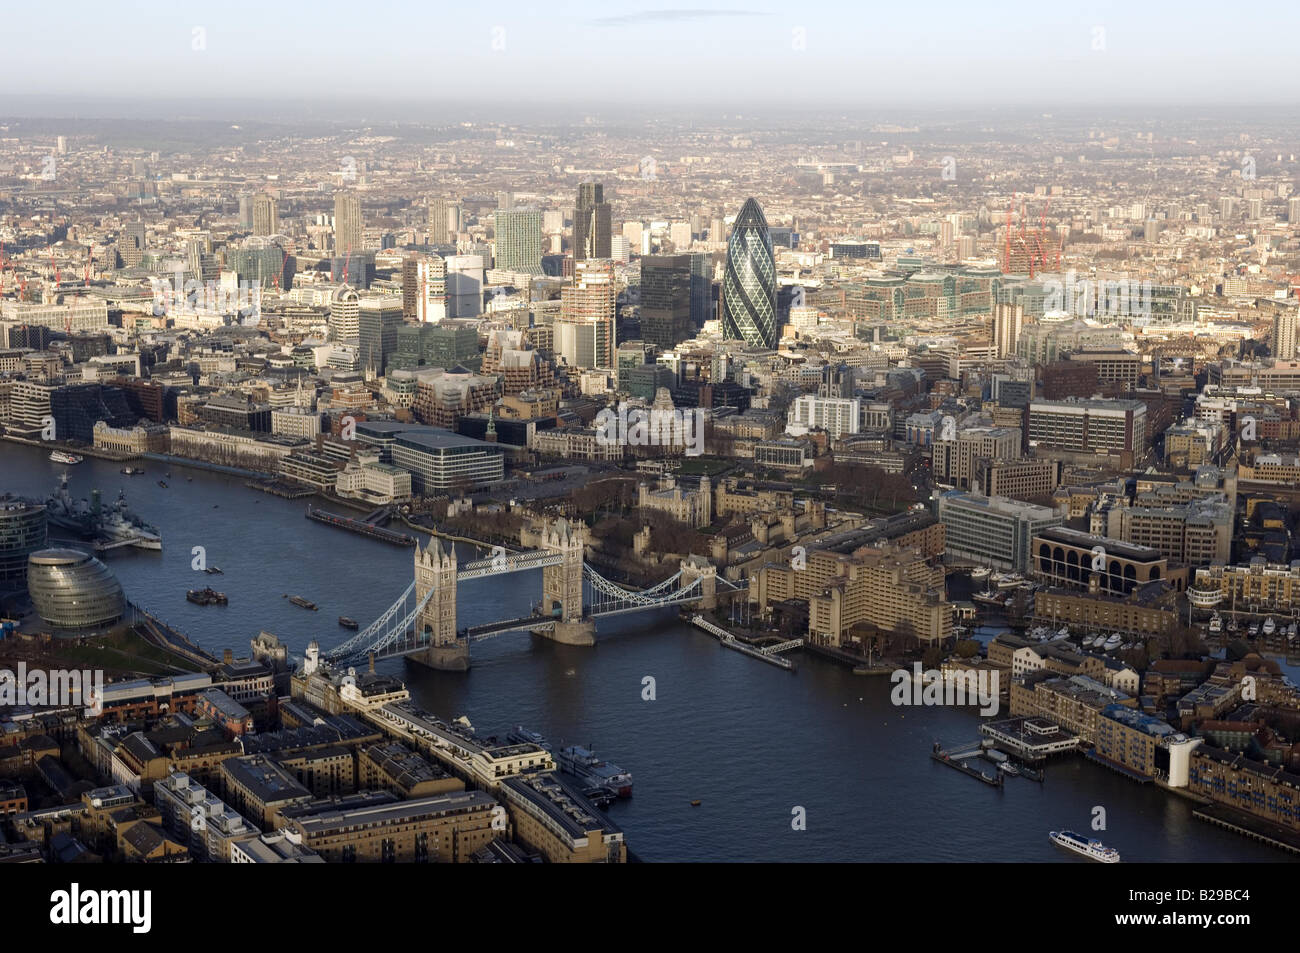 The City of London Date 12 03 2008 Ref ZB648 111149 0050 COMPULSORY CREDIT World Pictures Photoshot - Stock Image